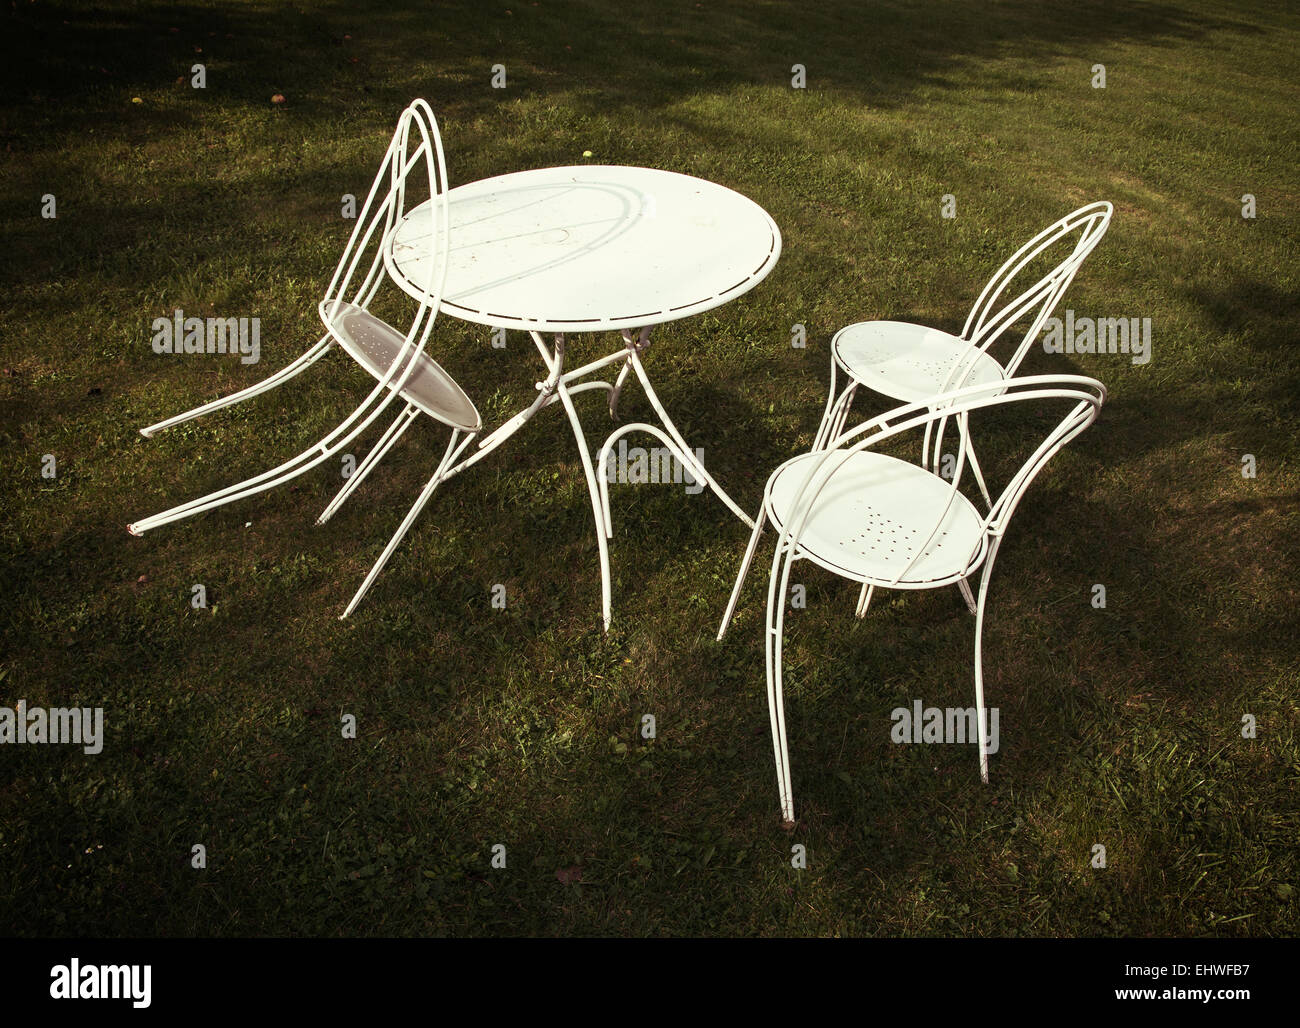 Swell White Metal Table And Chairs On The Lawn Garden Party Stock Interior Design Ideas Pimpapslepicentreinfo